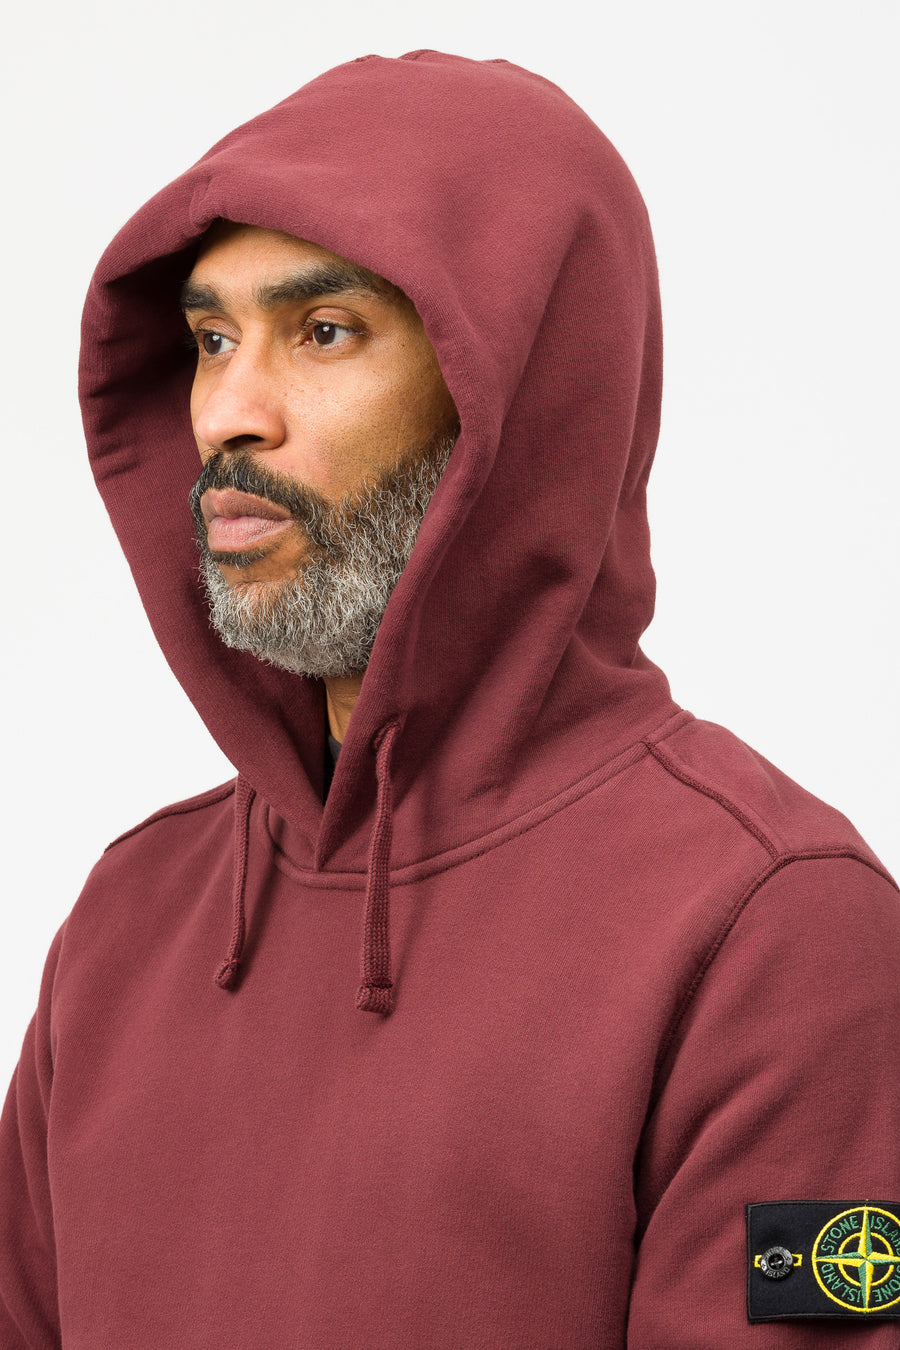 Stone Island 62820 Hooded Sweatshirt in Dark Burgundy - Notre